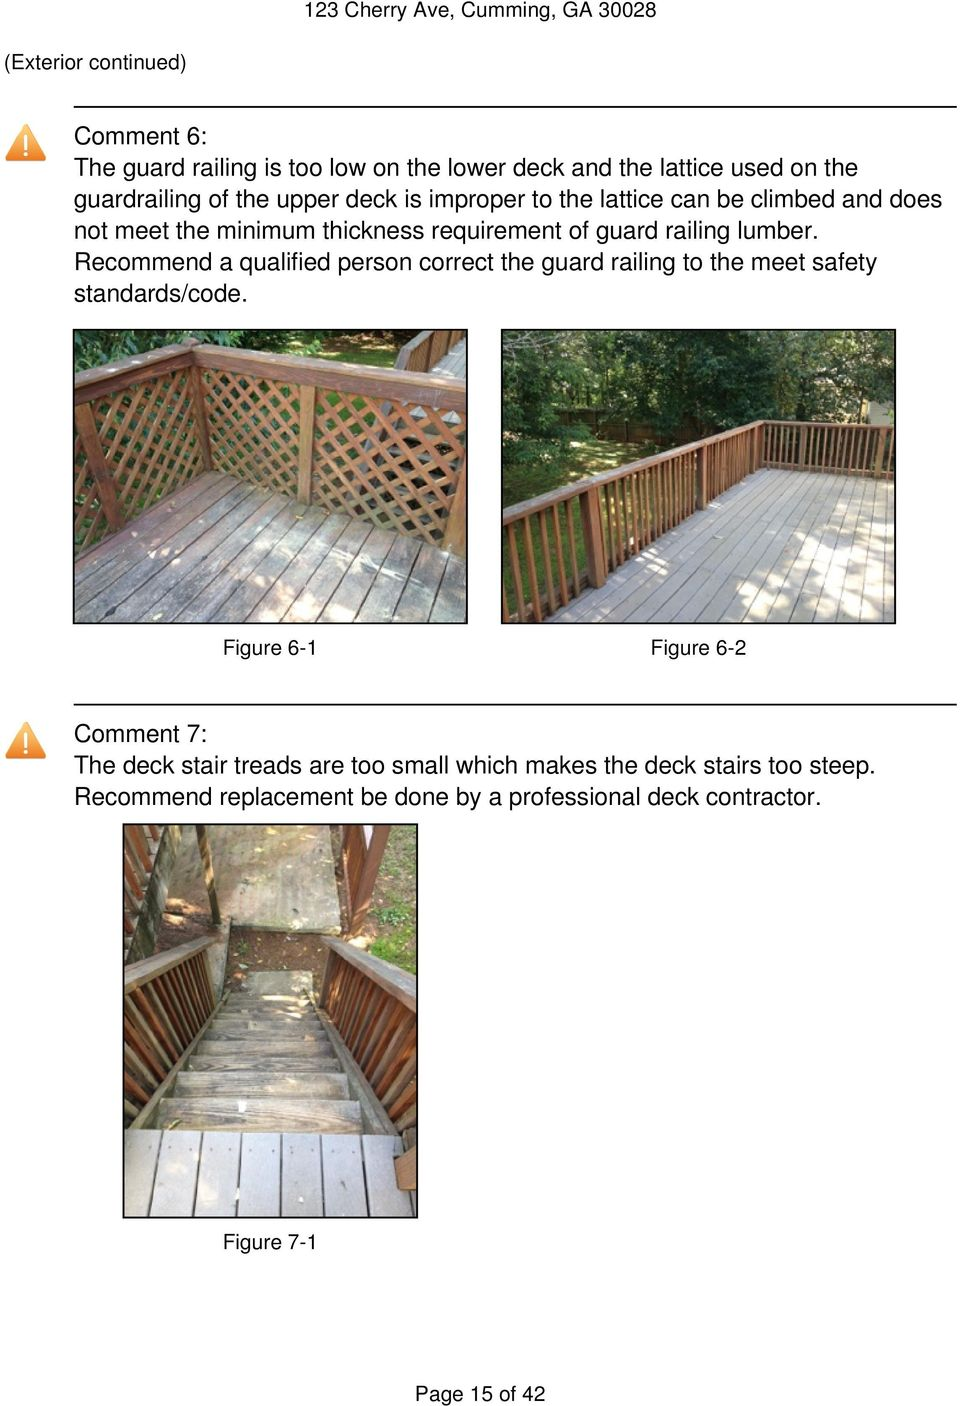 Recommend a qualified person correct the guard railing to the meet safety standards/code.